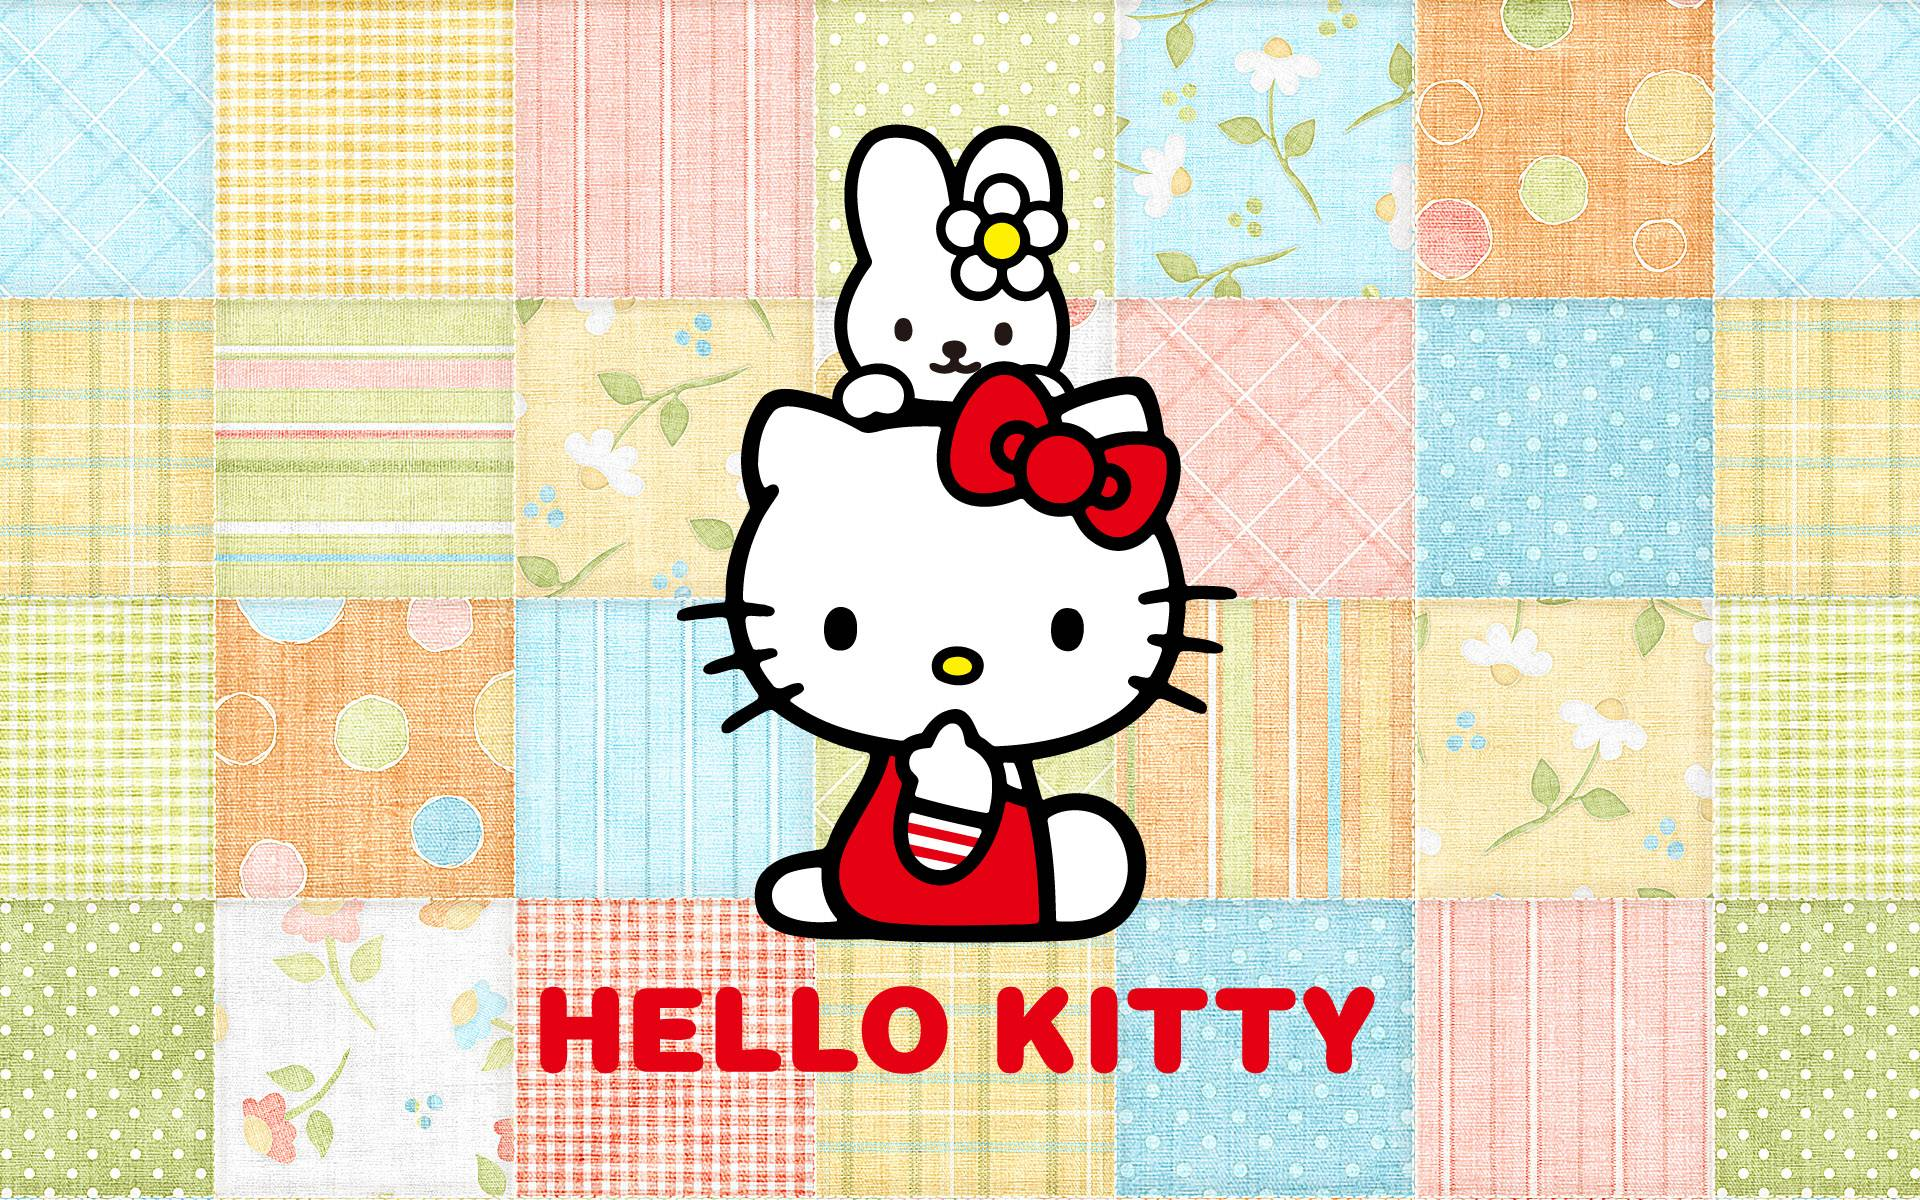 Hello Kitty Wallpapers For Tablet - Wallpaper Cave